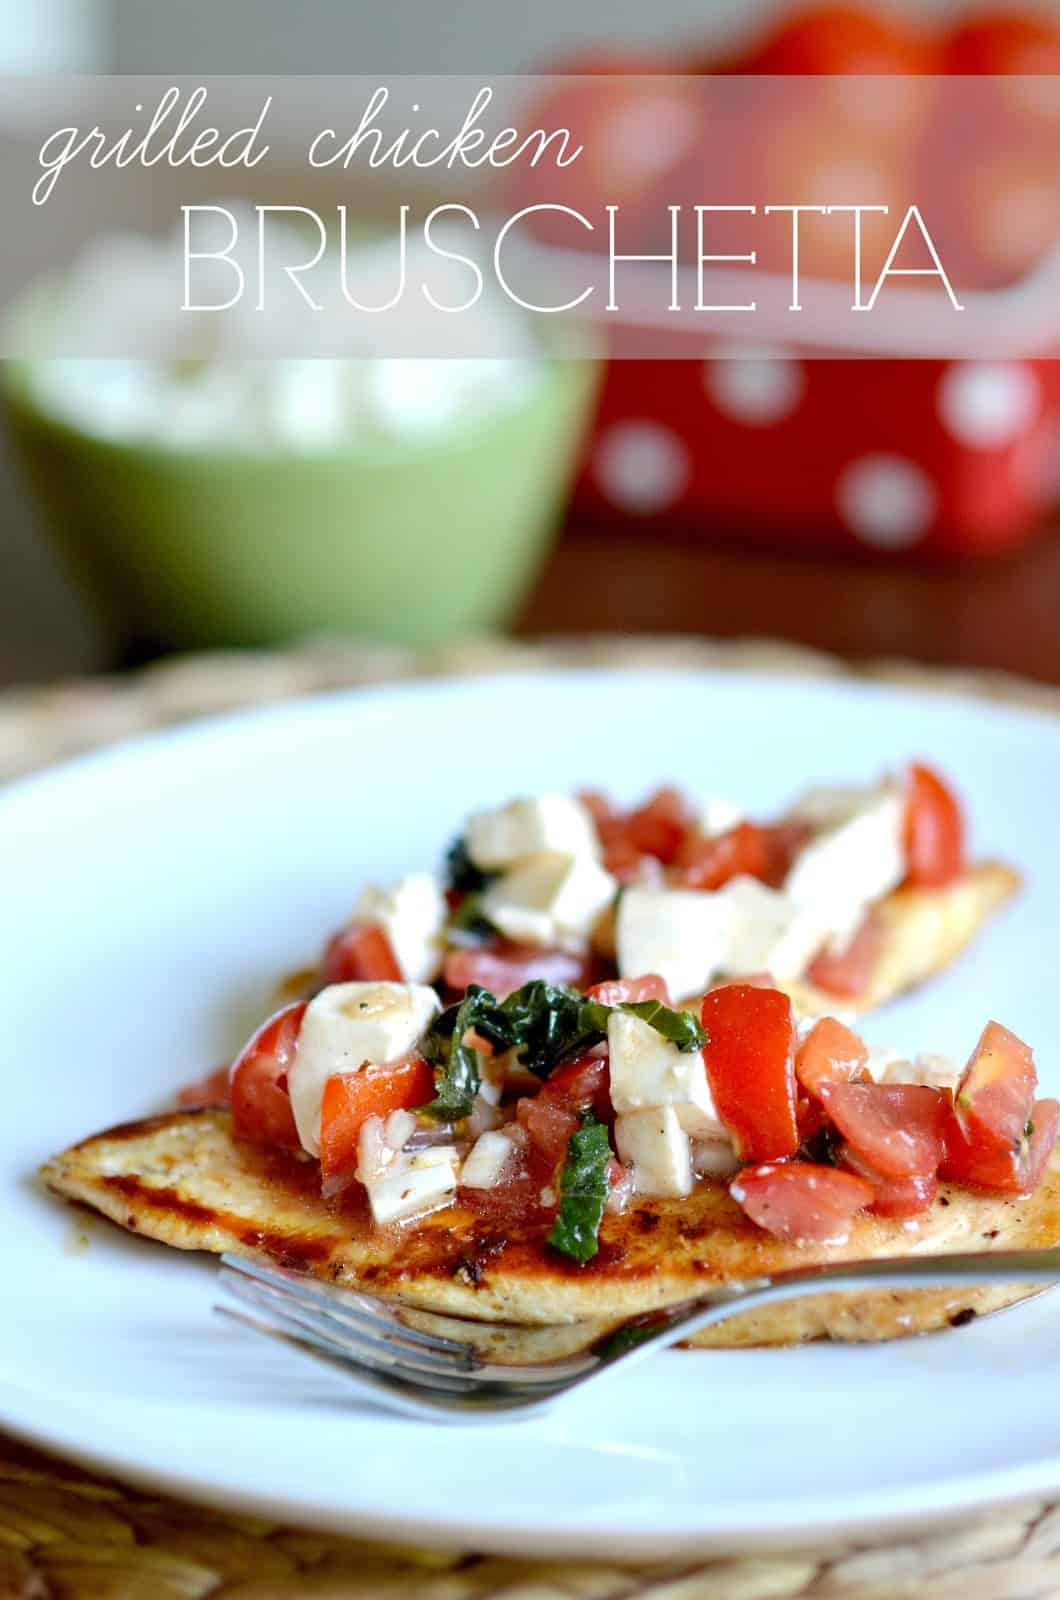 GRILLED BRUSCHETTA CHICKEN and AMAZON GIFT CARD GIVEAWAY